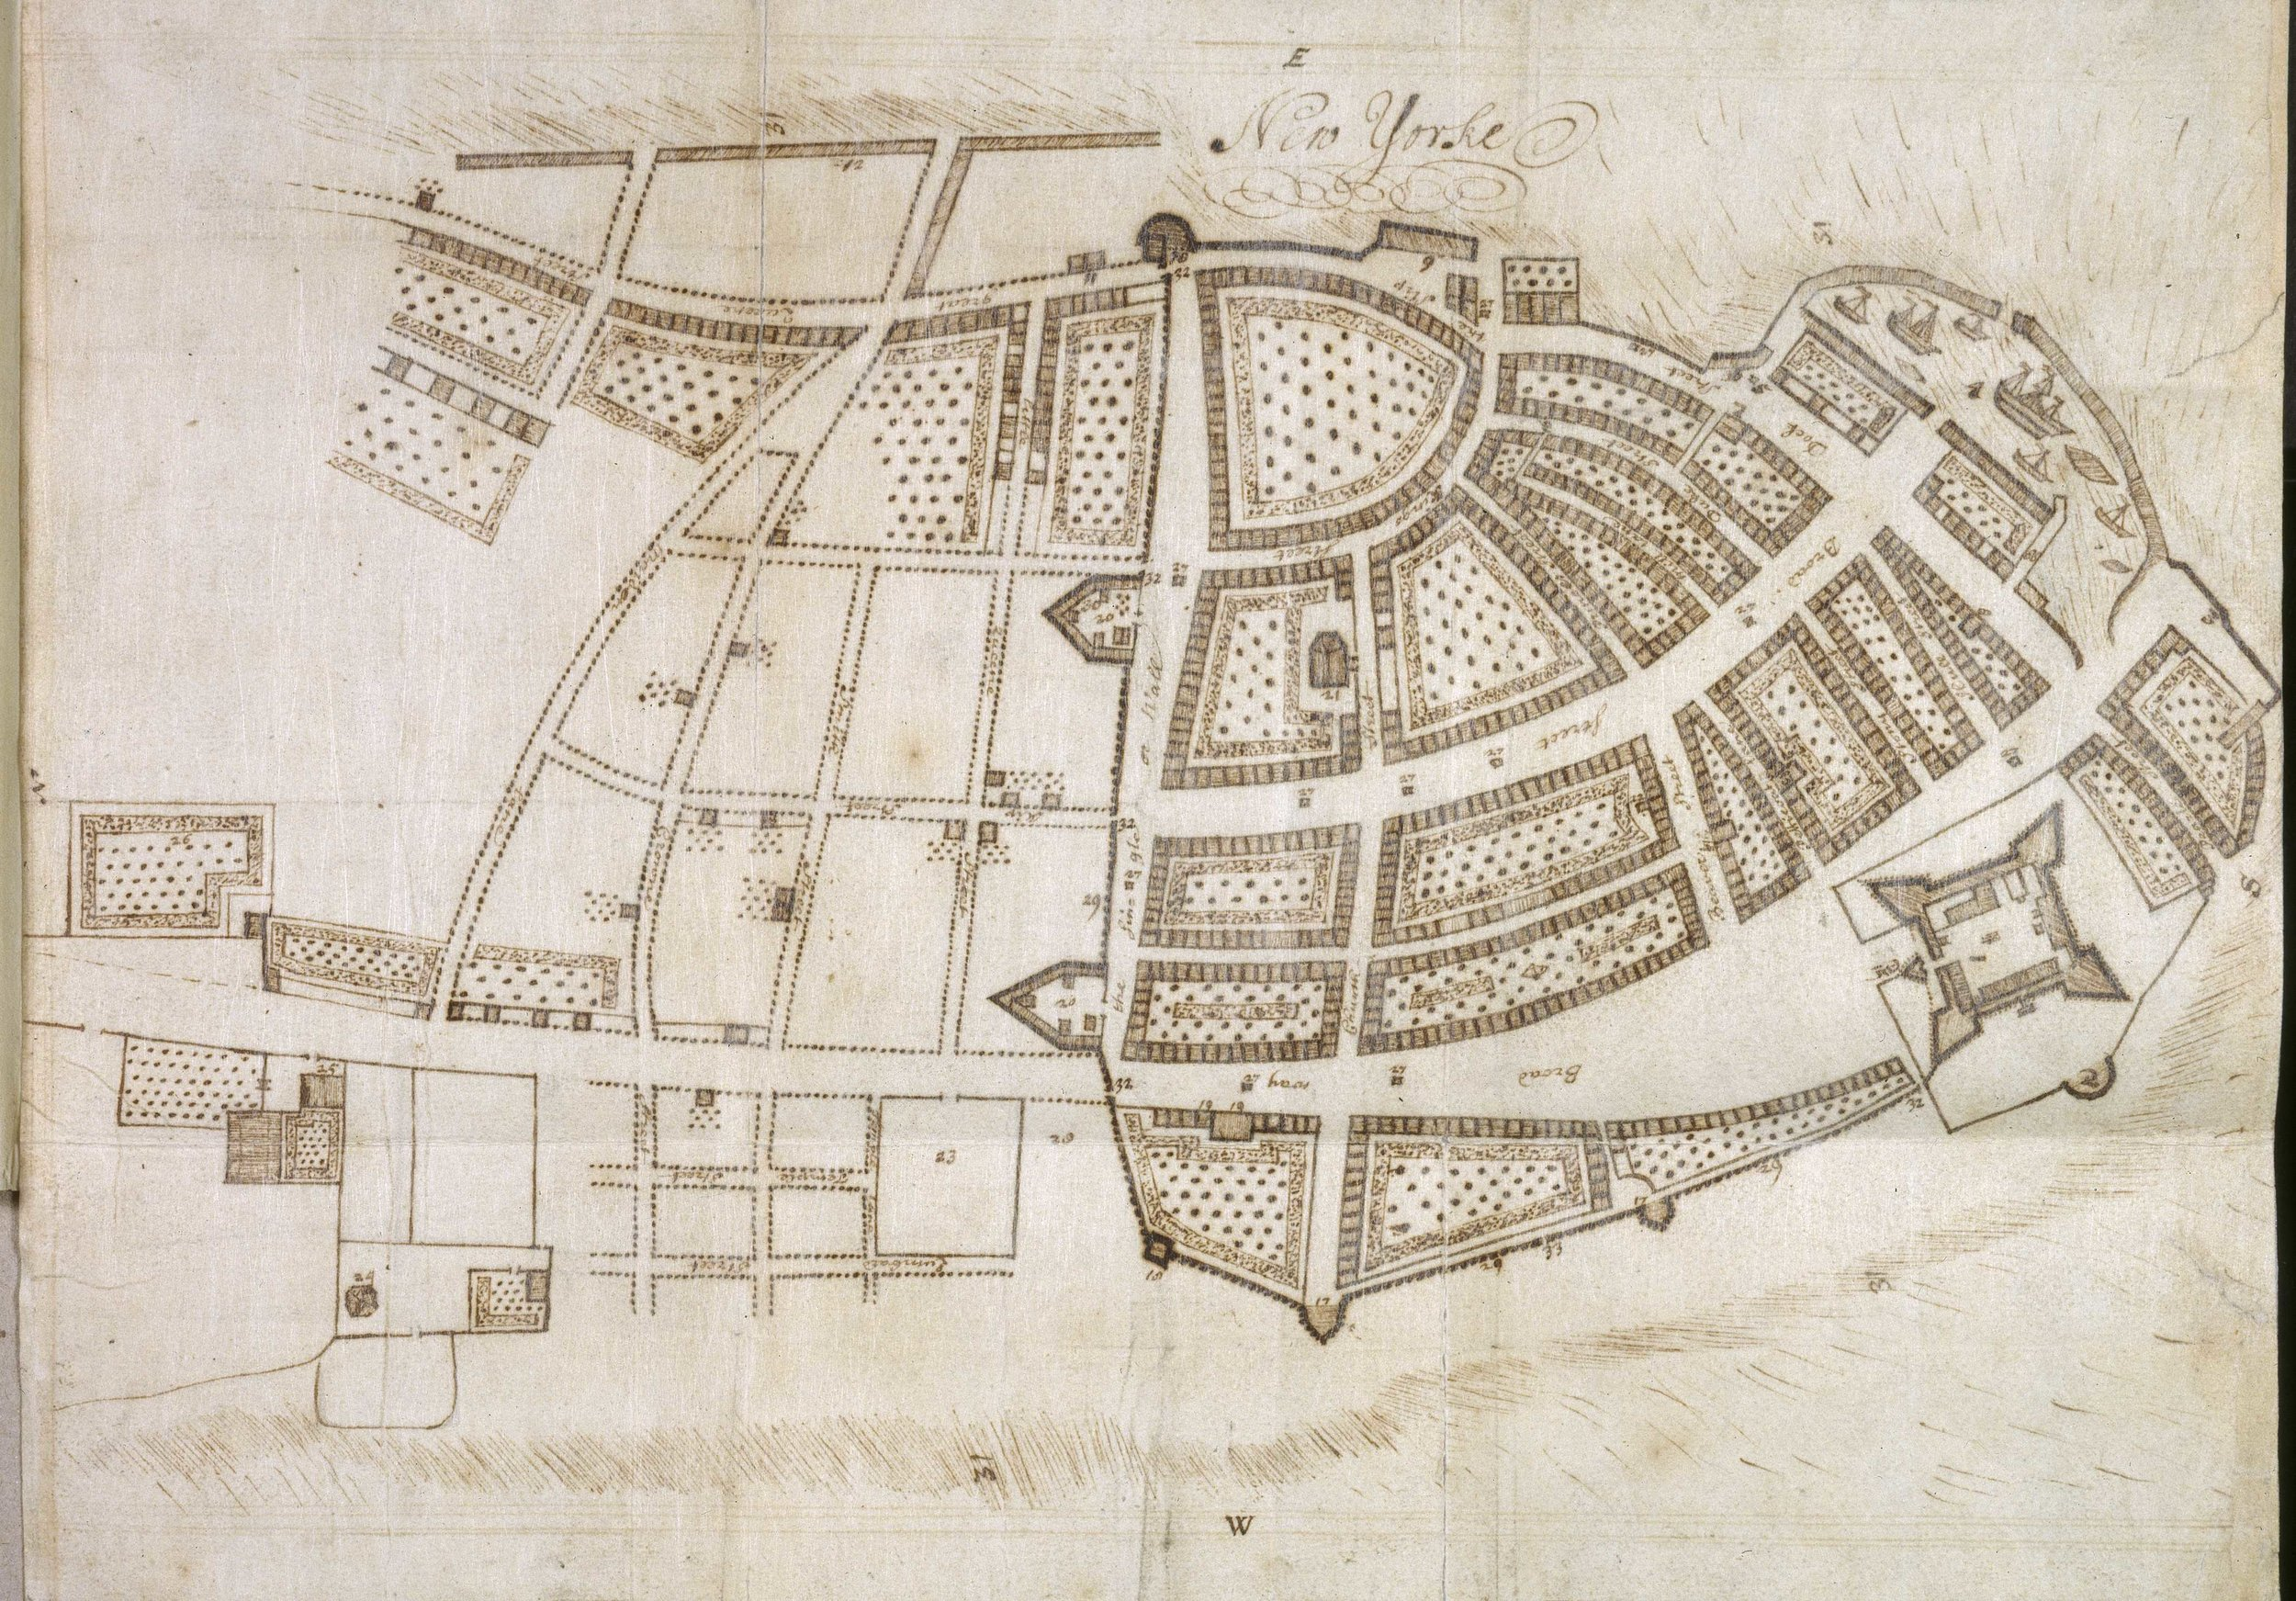 "The Miller Plan of 1695 is the last map to show the wall. It was made by John Miller, the chaplain of the fort from 1692-1695. He created a detailed description of the city and a map, but had to throw it all overboard when his ship was captured by the French. In prison, he recreated his map and writings, which were eventually published in 1843 as  New York Considered and Improved . He clearly describes ""On the North side are two large stone Points & therein about 8 Guns some mounted & some unmounted."" The point on the bottom of the map is the western bastion known as the Oyster Pasty Mount. Note the street along the Wall is ""The Single or Wall Street."" Map courtesy  The British Library ."